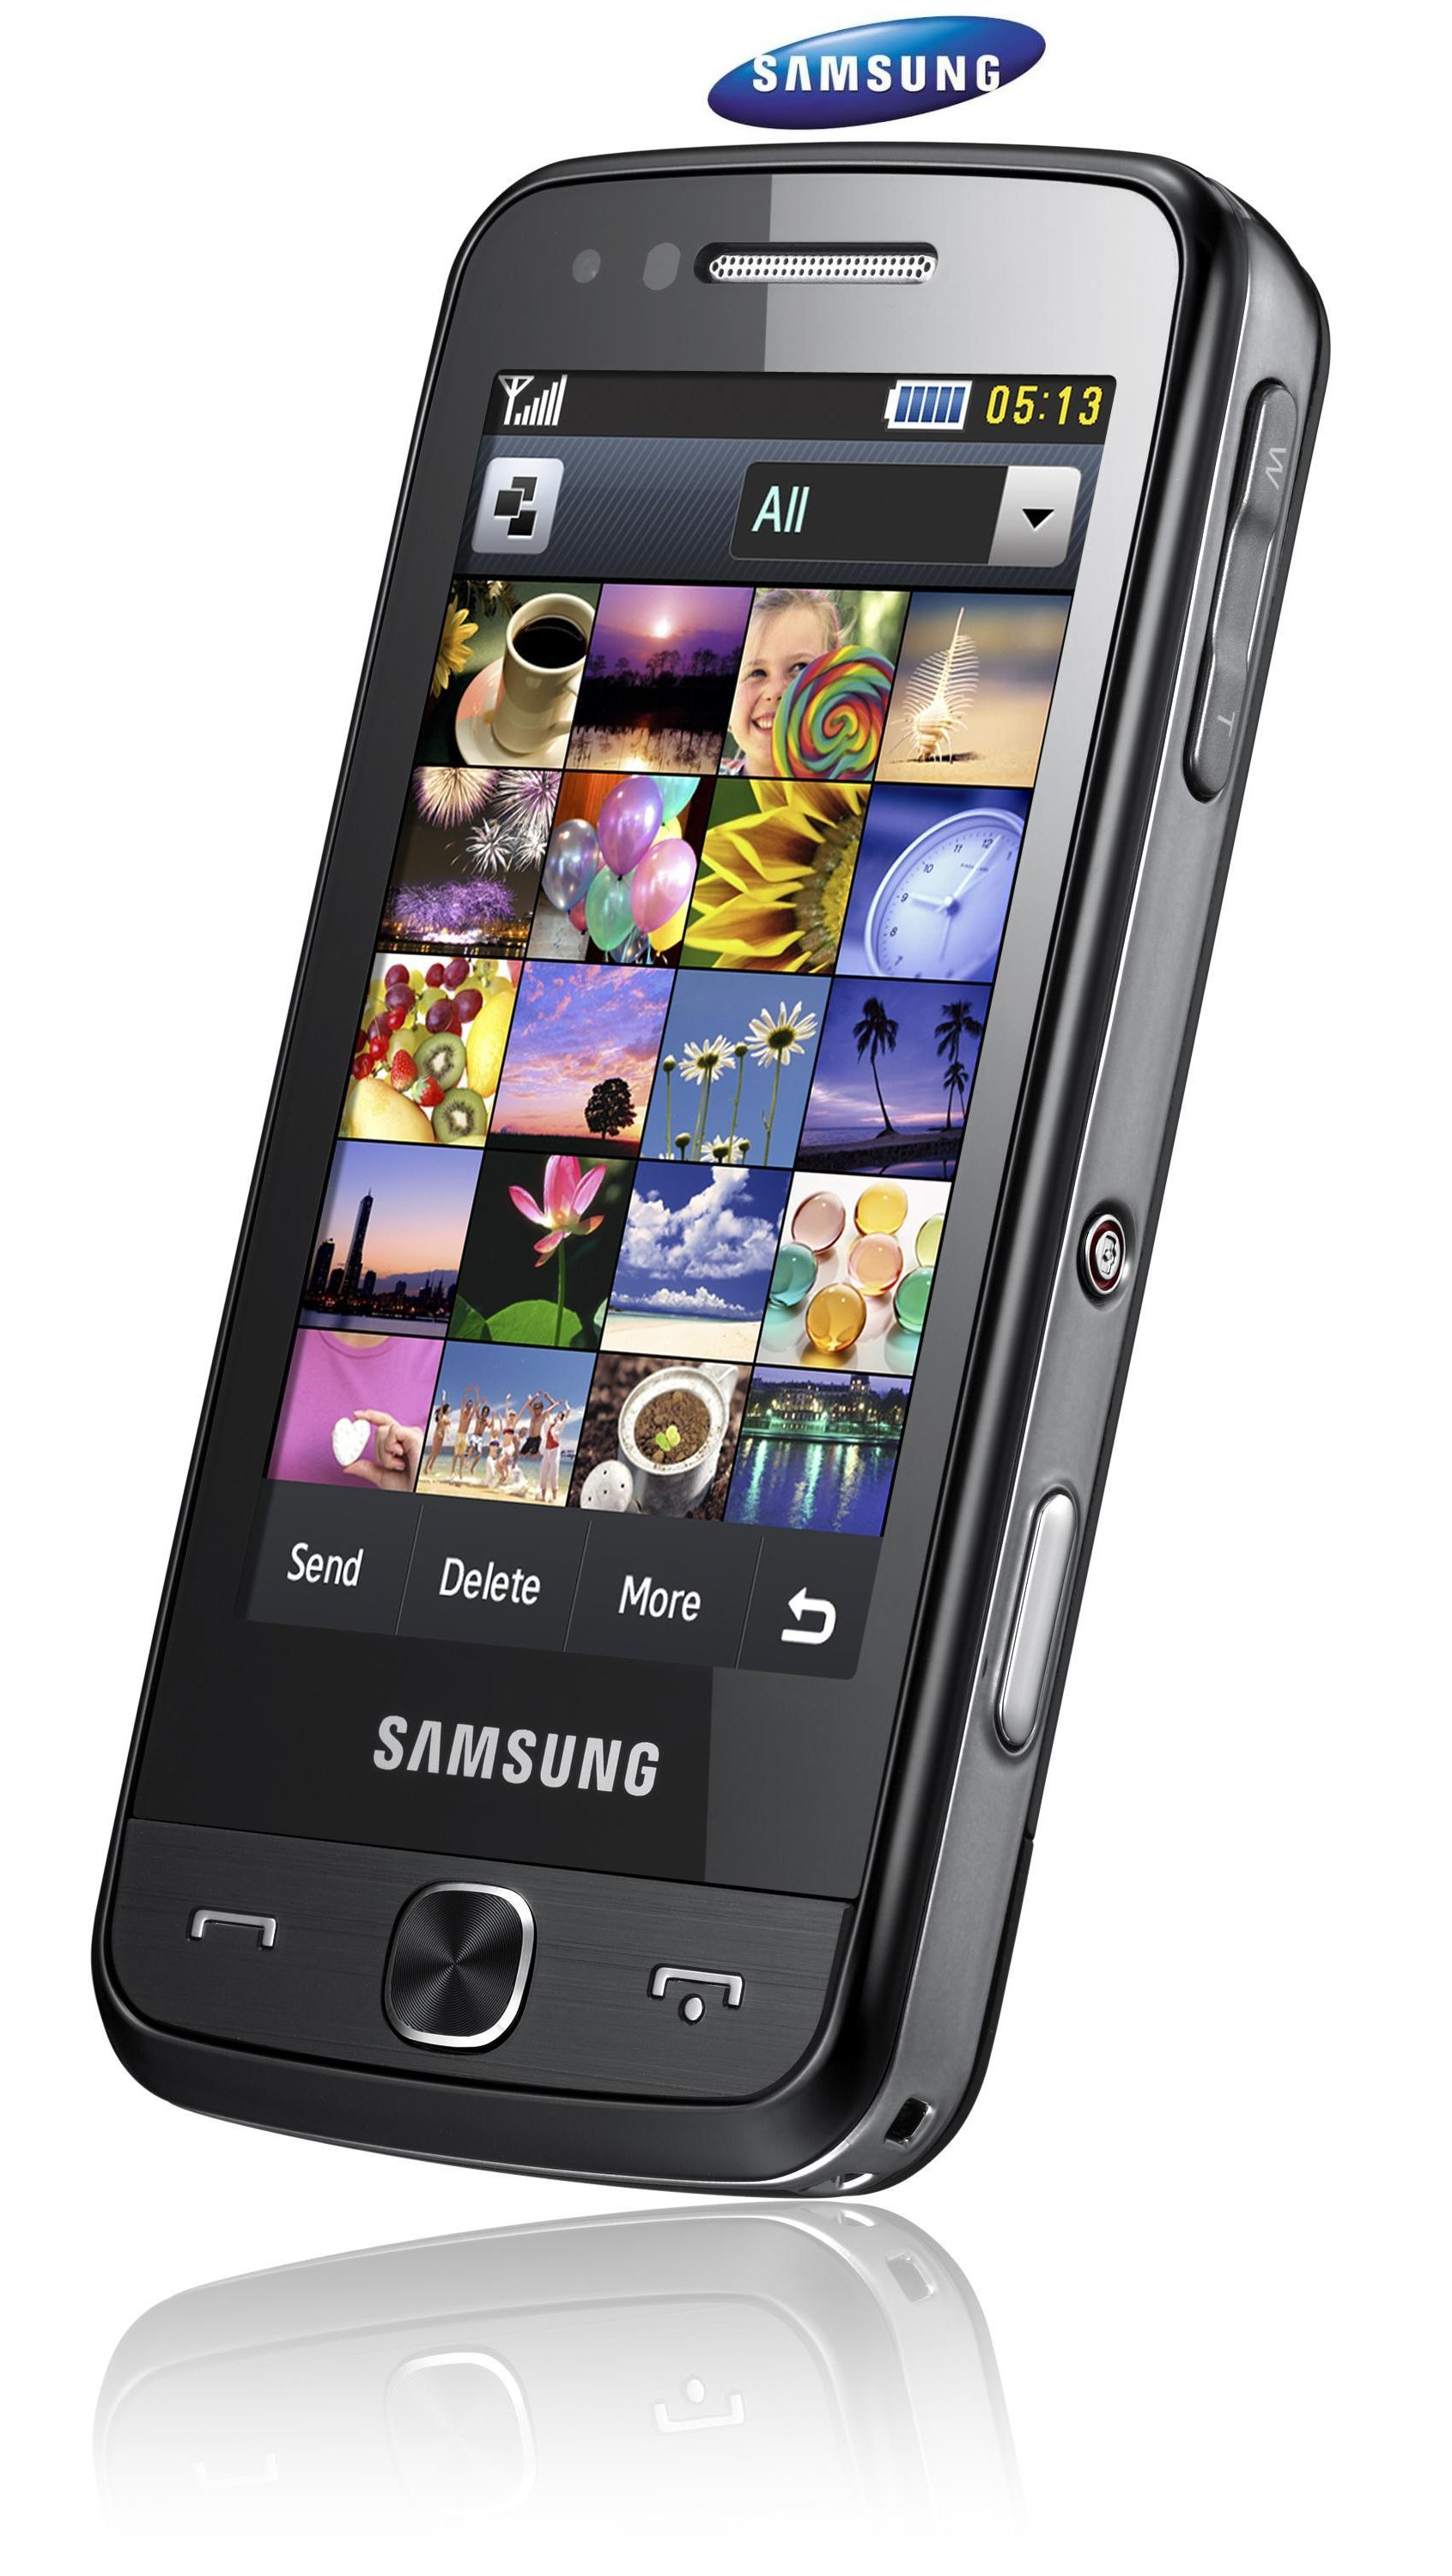 SAMSUNG LAUNCHES WORLD'S FIRST 12MP CAMERA PHONE IN INDIA